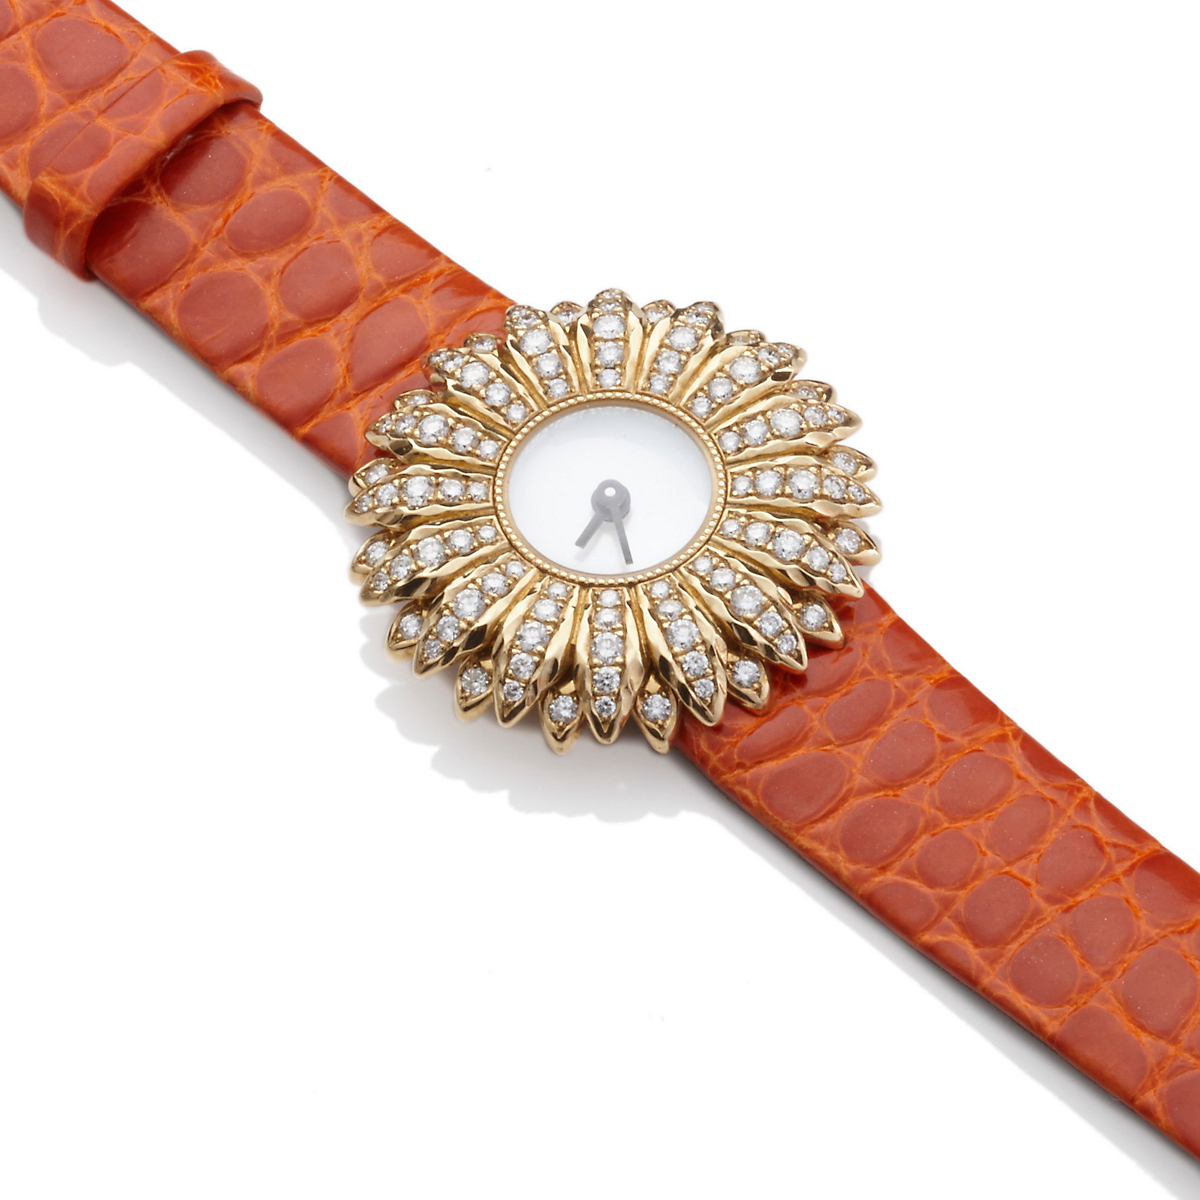 Buccellati Bellis Diamond Watch, Orange